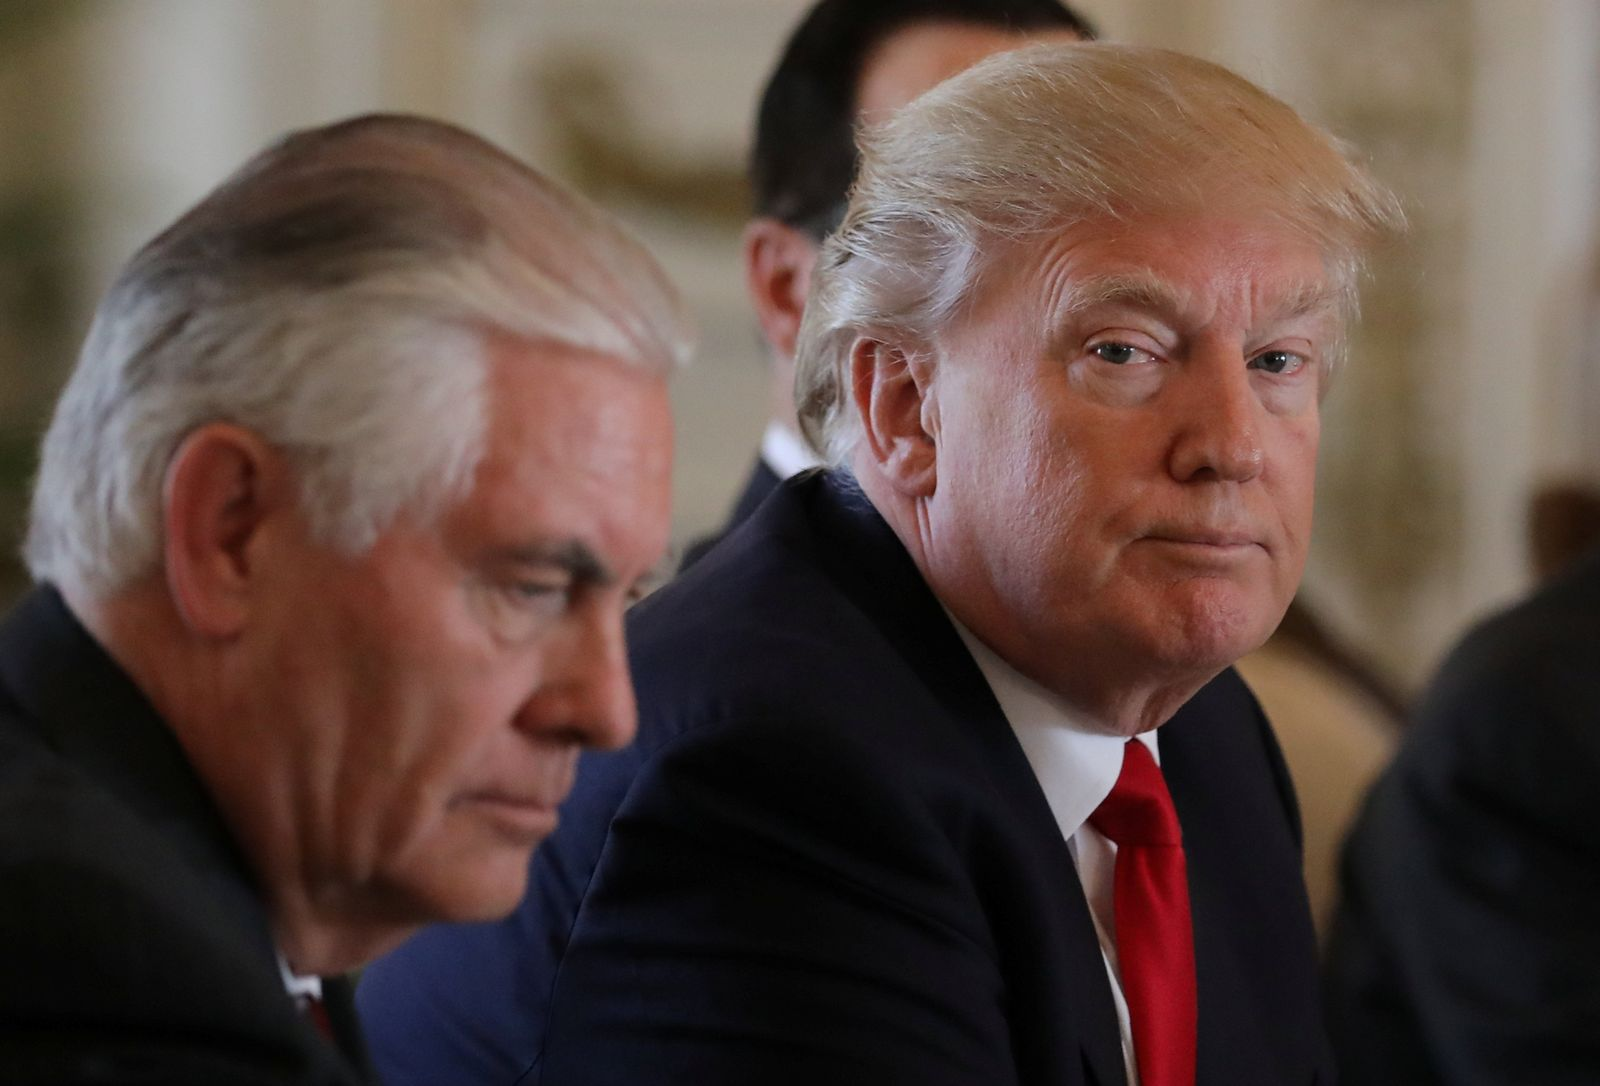 U.S. President Trump sits next to Tillerson during bilateral meeting with China's President Xi at Trump's Mar-a-Lago estate in Palm Beach